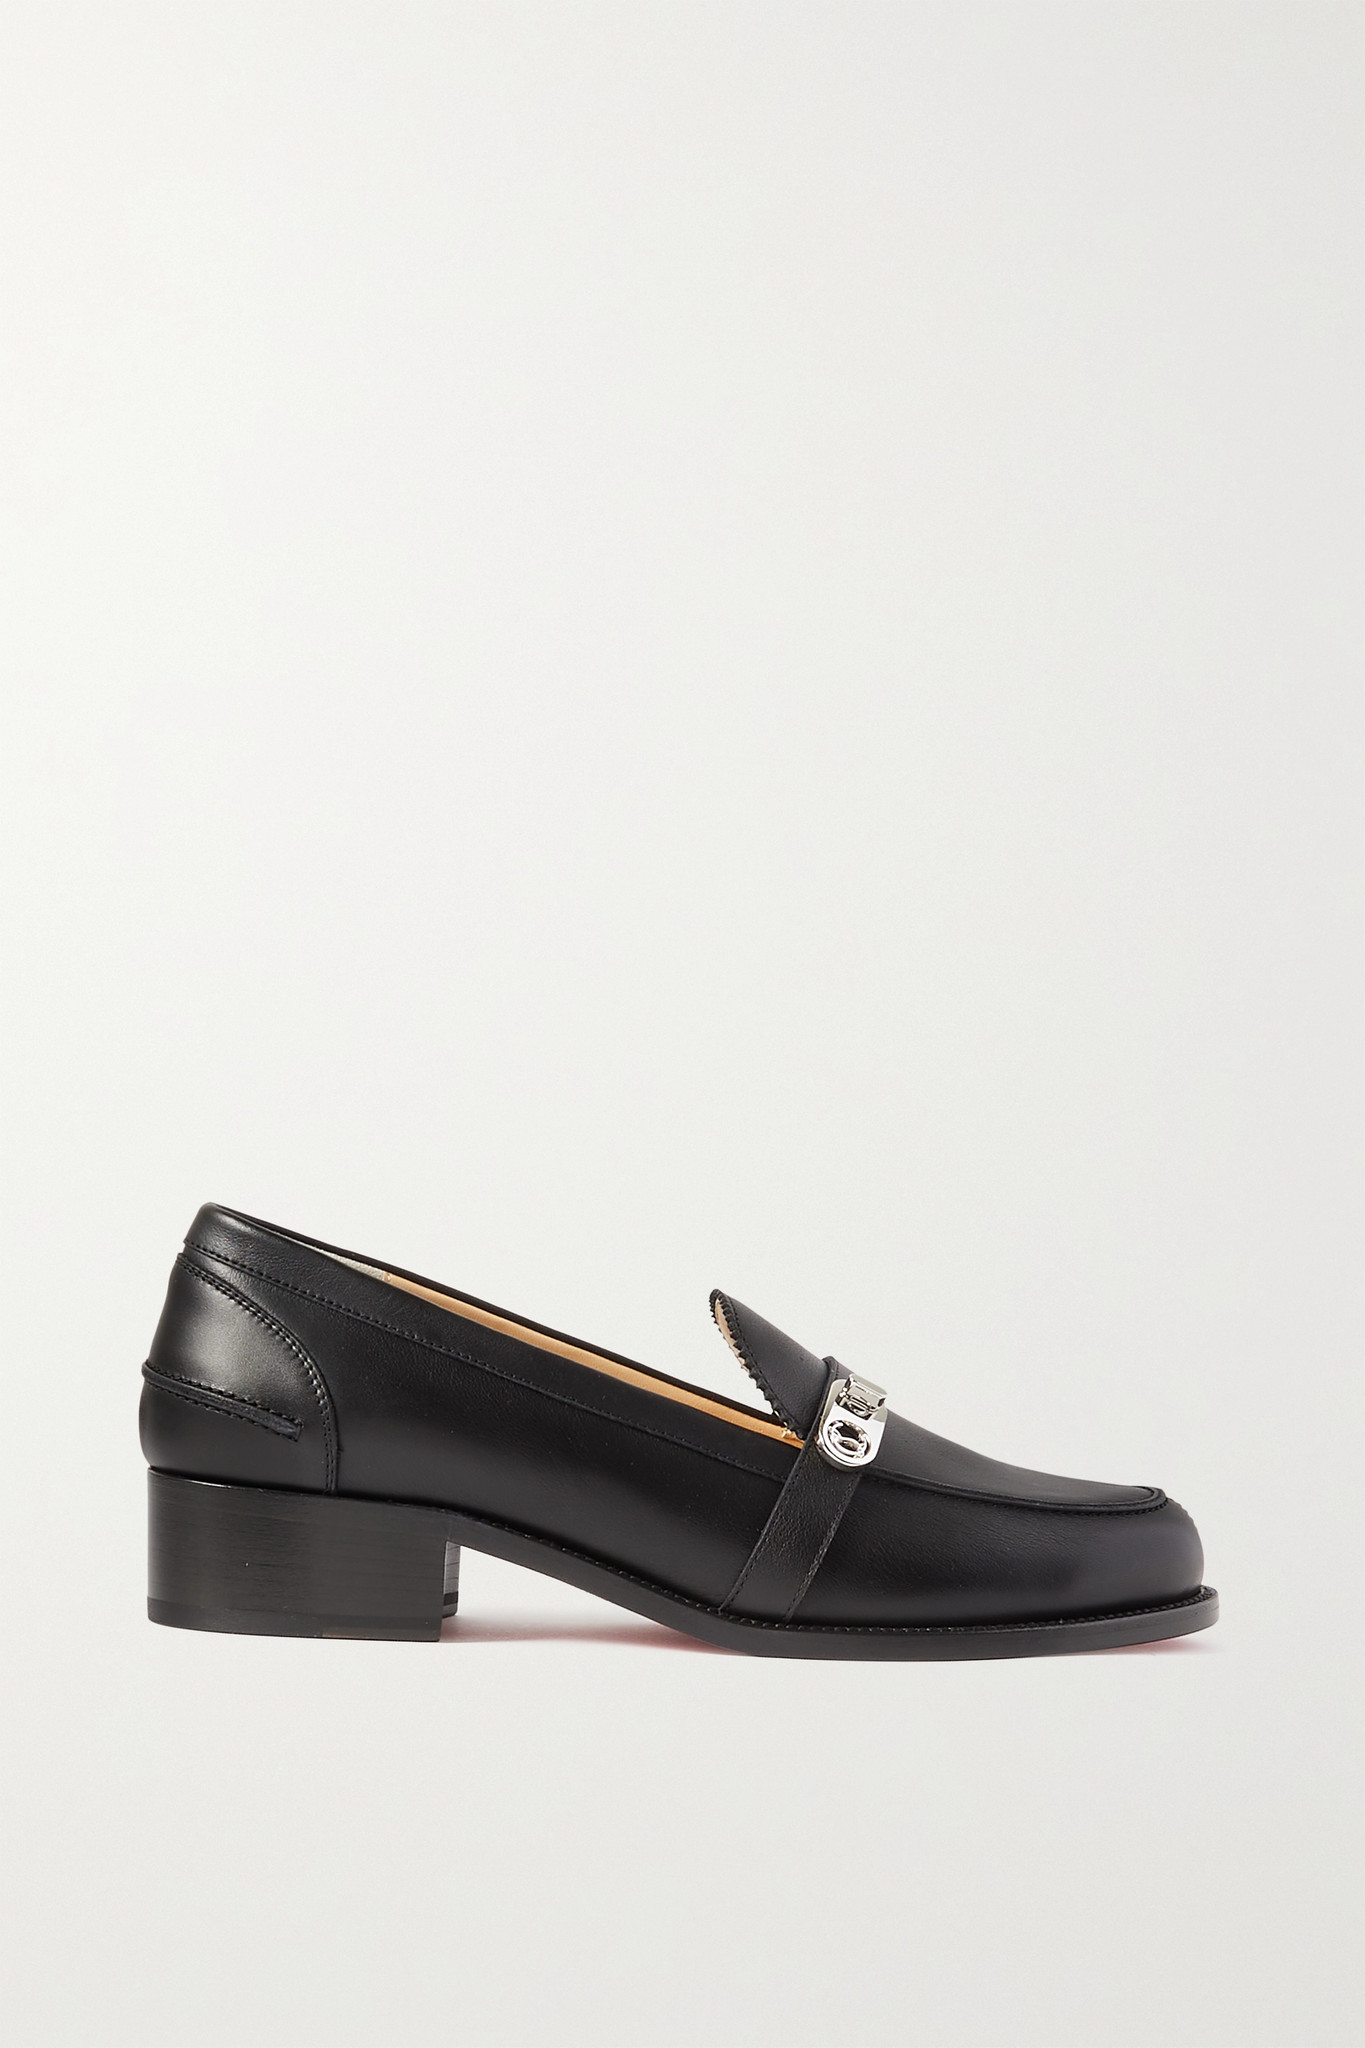 CHRISTIAN LOUBOUTIN - Lock Me Moc 45 Embellished Leather Loafers - Black - IT41